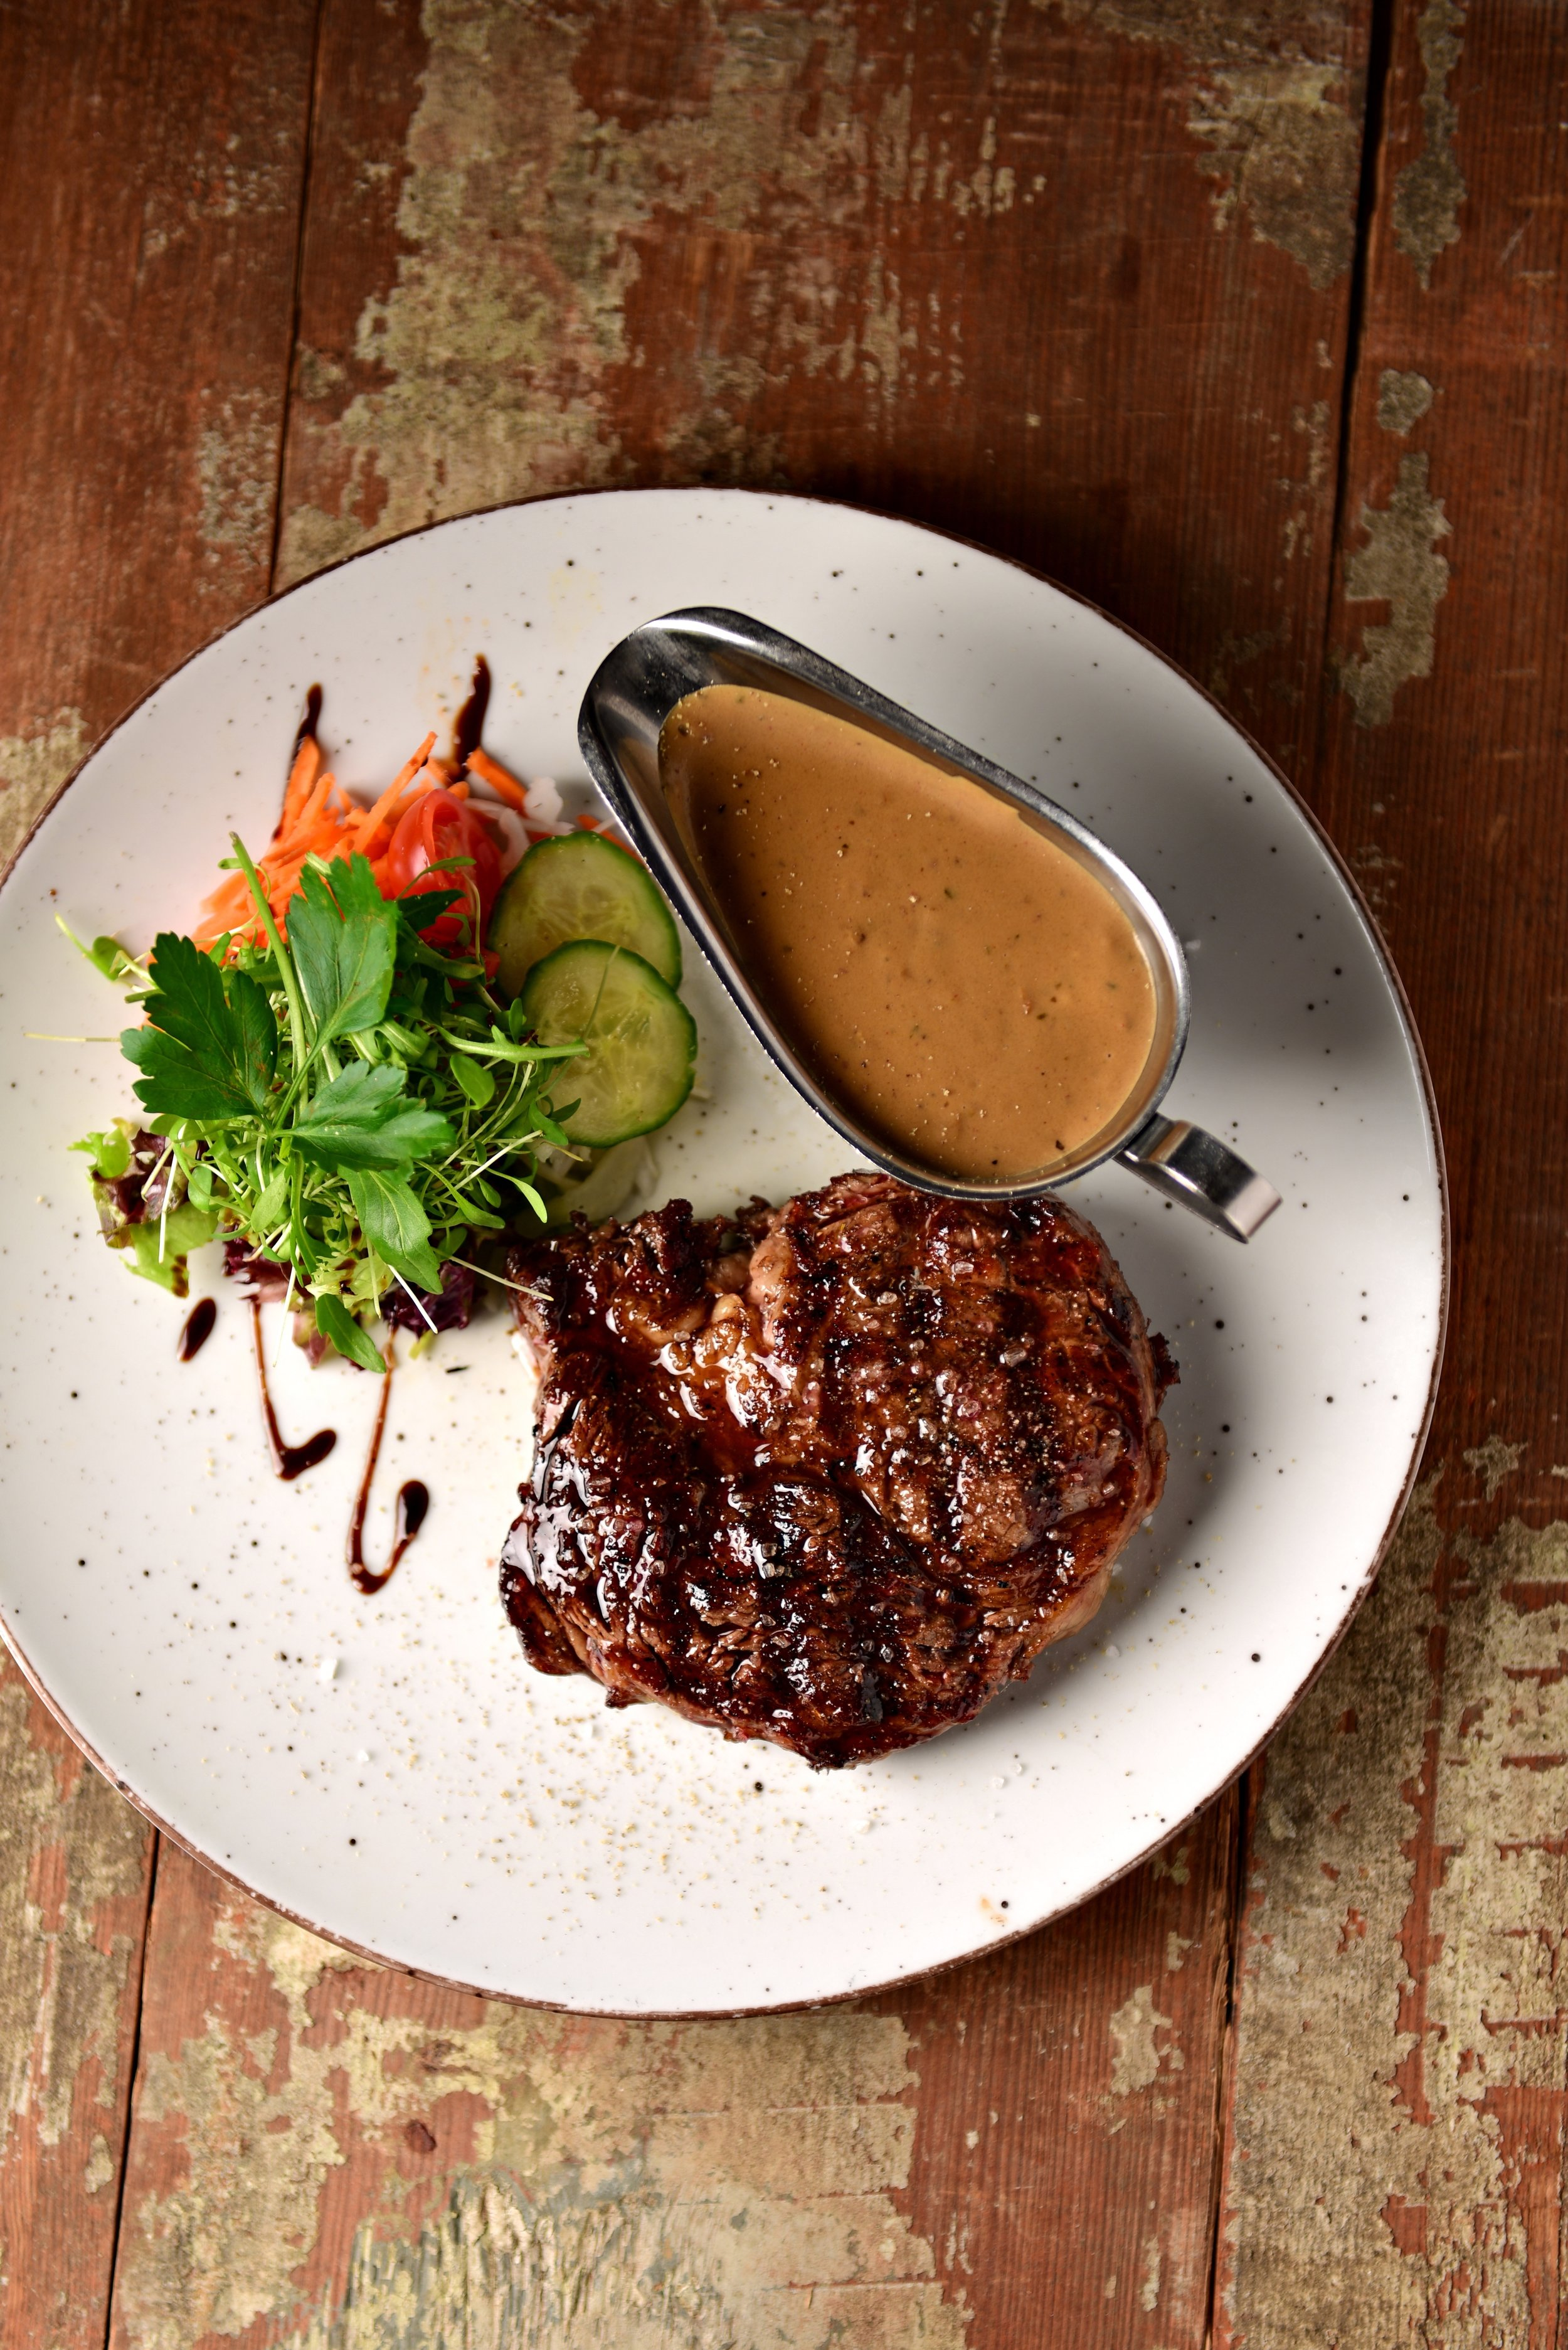 7 restuarant brasserie t filet purreke pureke aalst steak pur tablefever .jpg